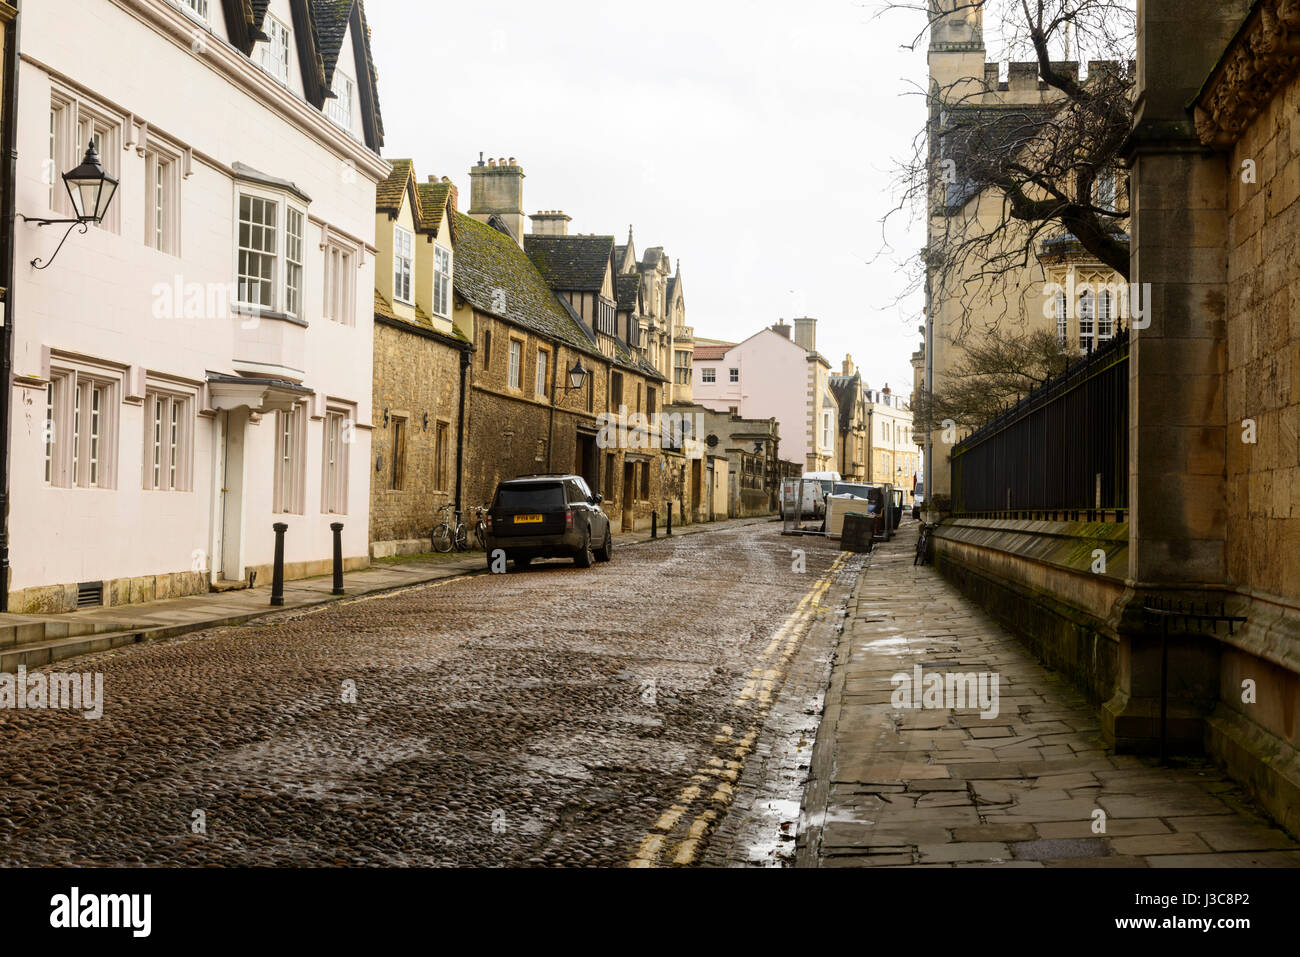 Old cobbled Street in Oxford - Stock Image